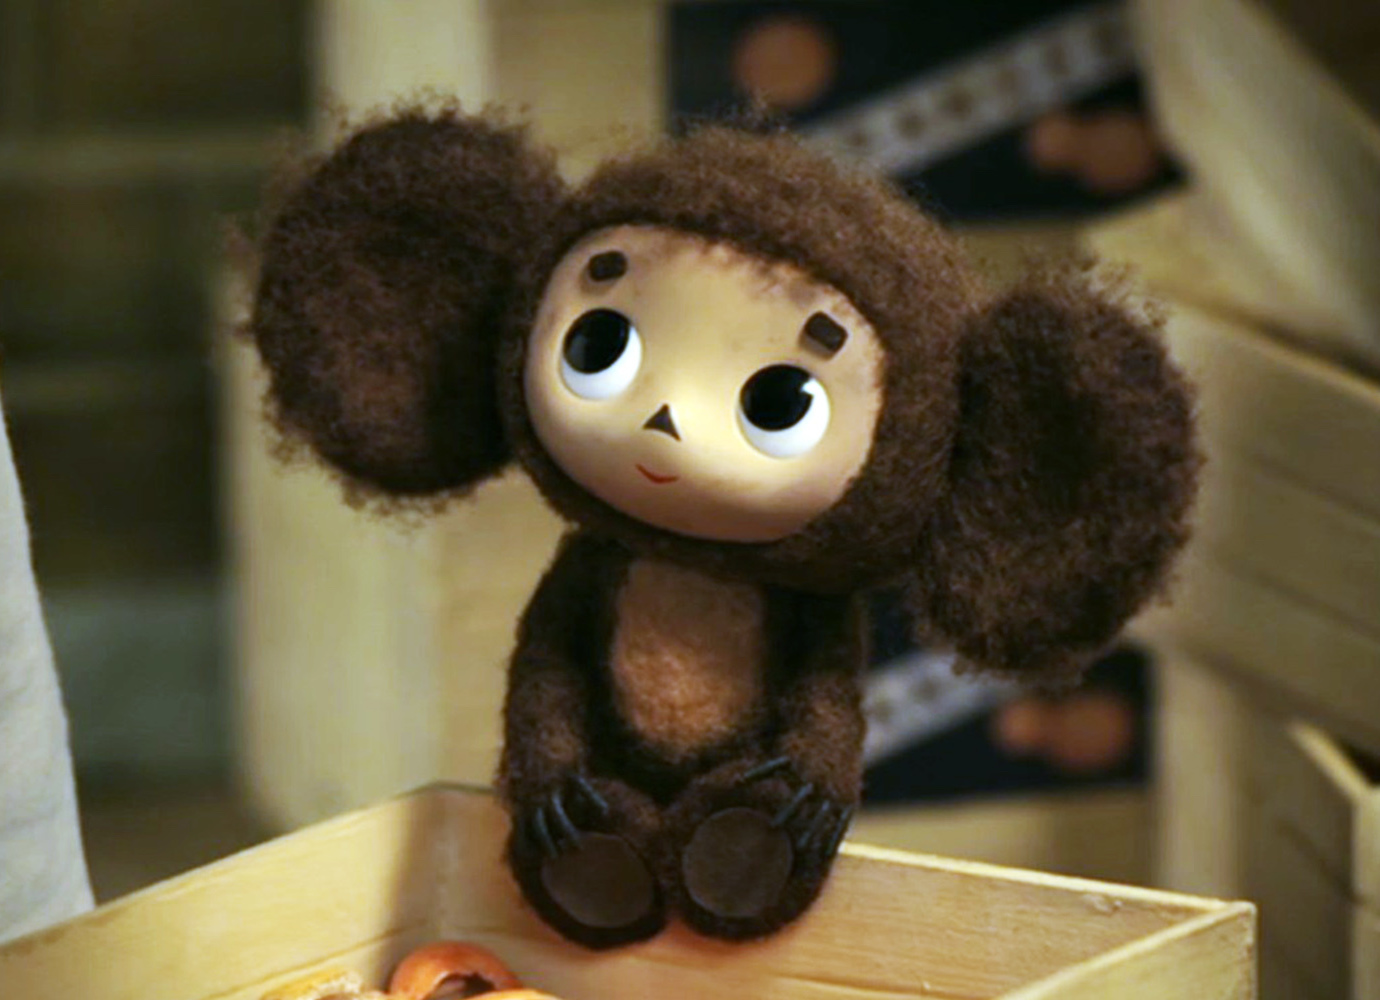 50 years of Cheburashka: why the Soviet Union's best-loved cartoon character is still winning hearts after half a century